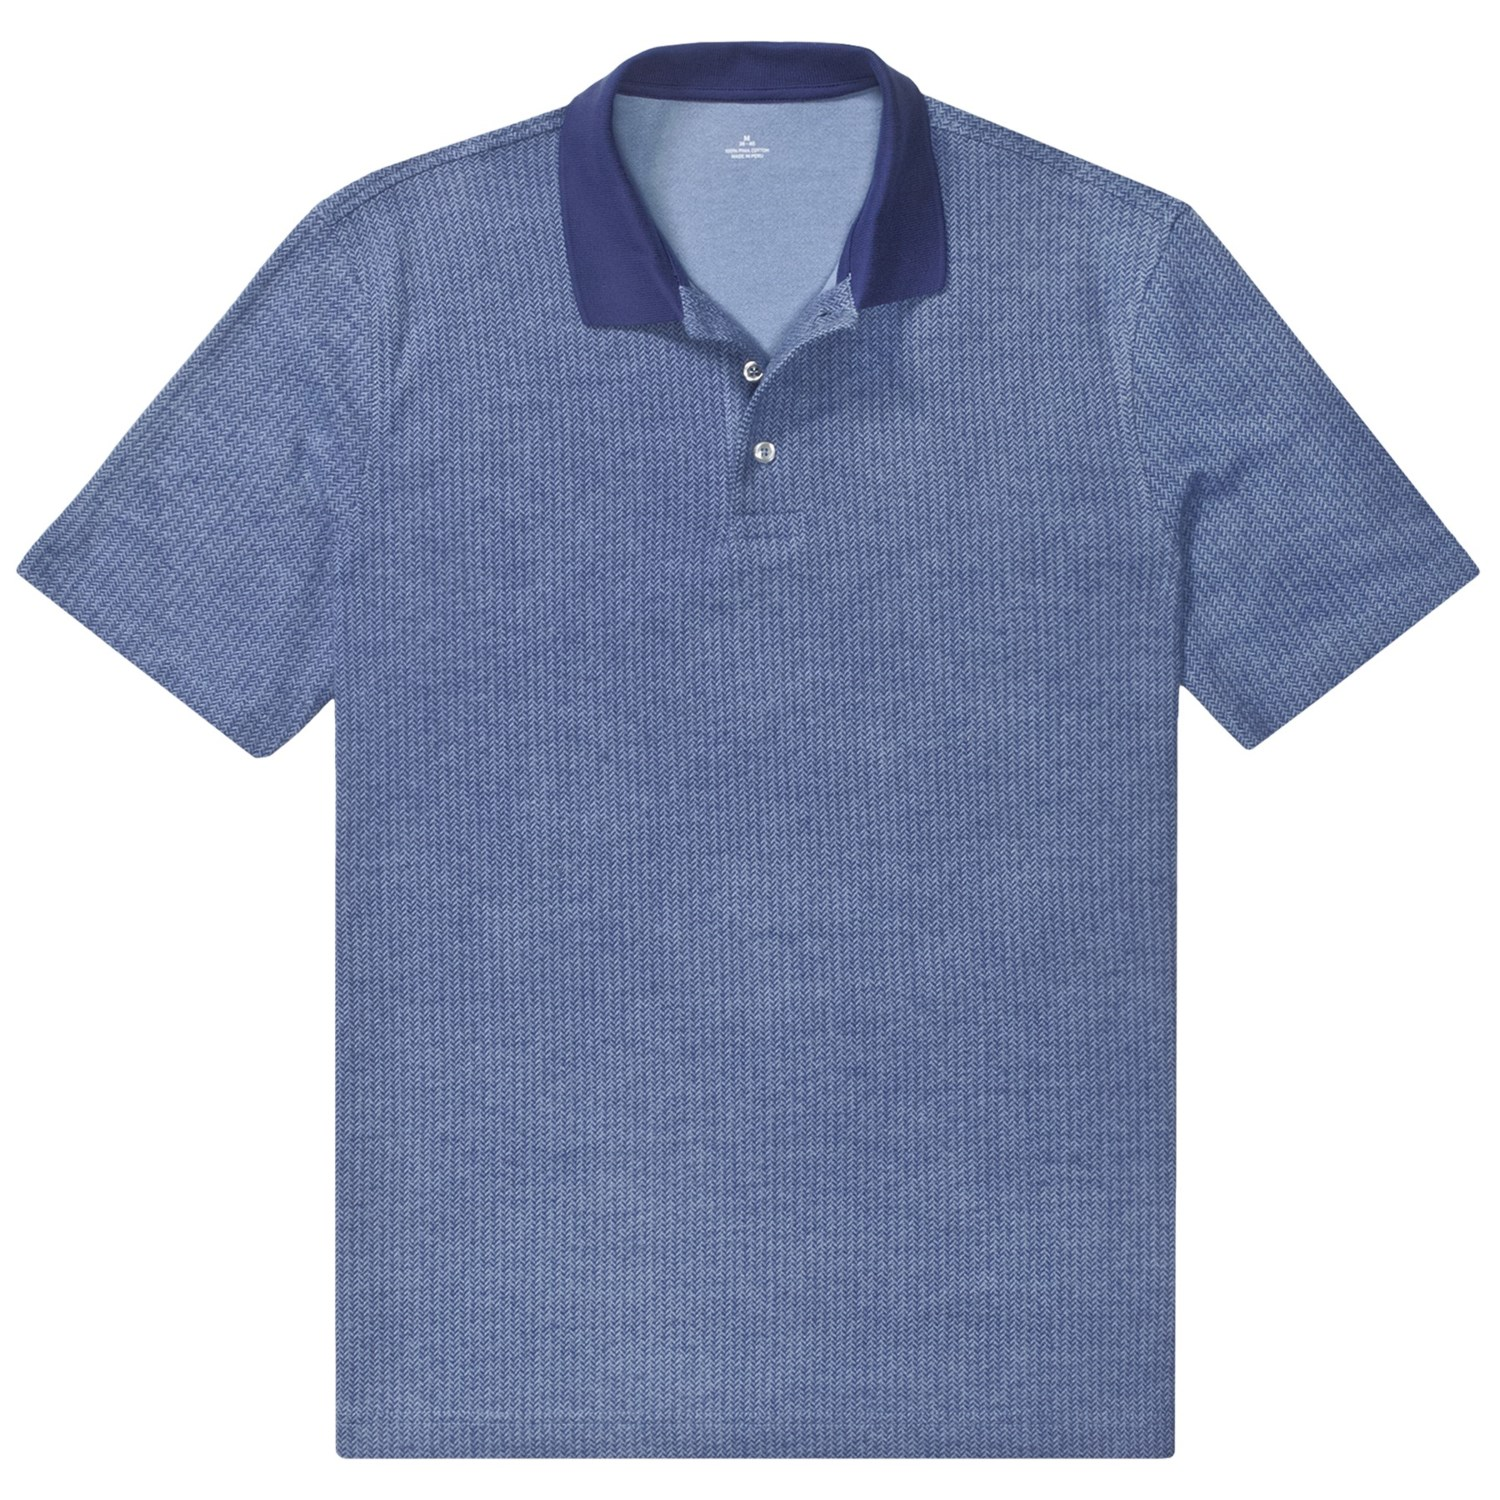 Wholesale Pima Cotton Polo Shirts